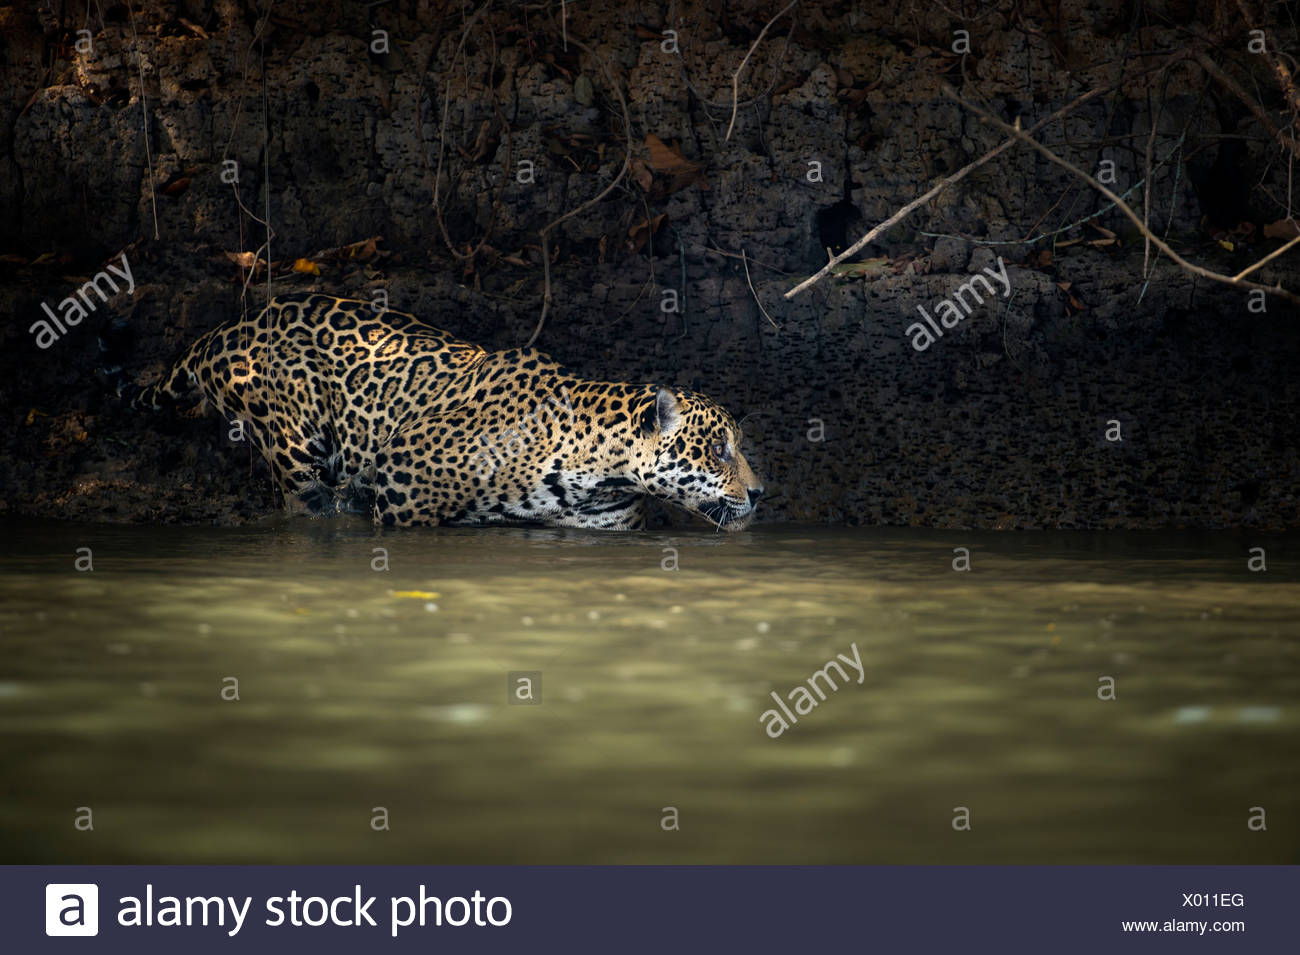 Wild male Jaguar (Panthera onca palustris) entering the Piquiri River, a tributary of Cuiaba River, Northern Pantanal, Brazil. - Stock Image